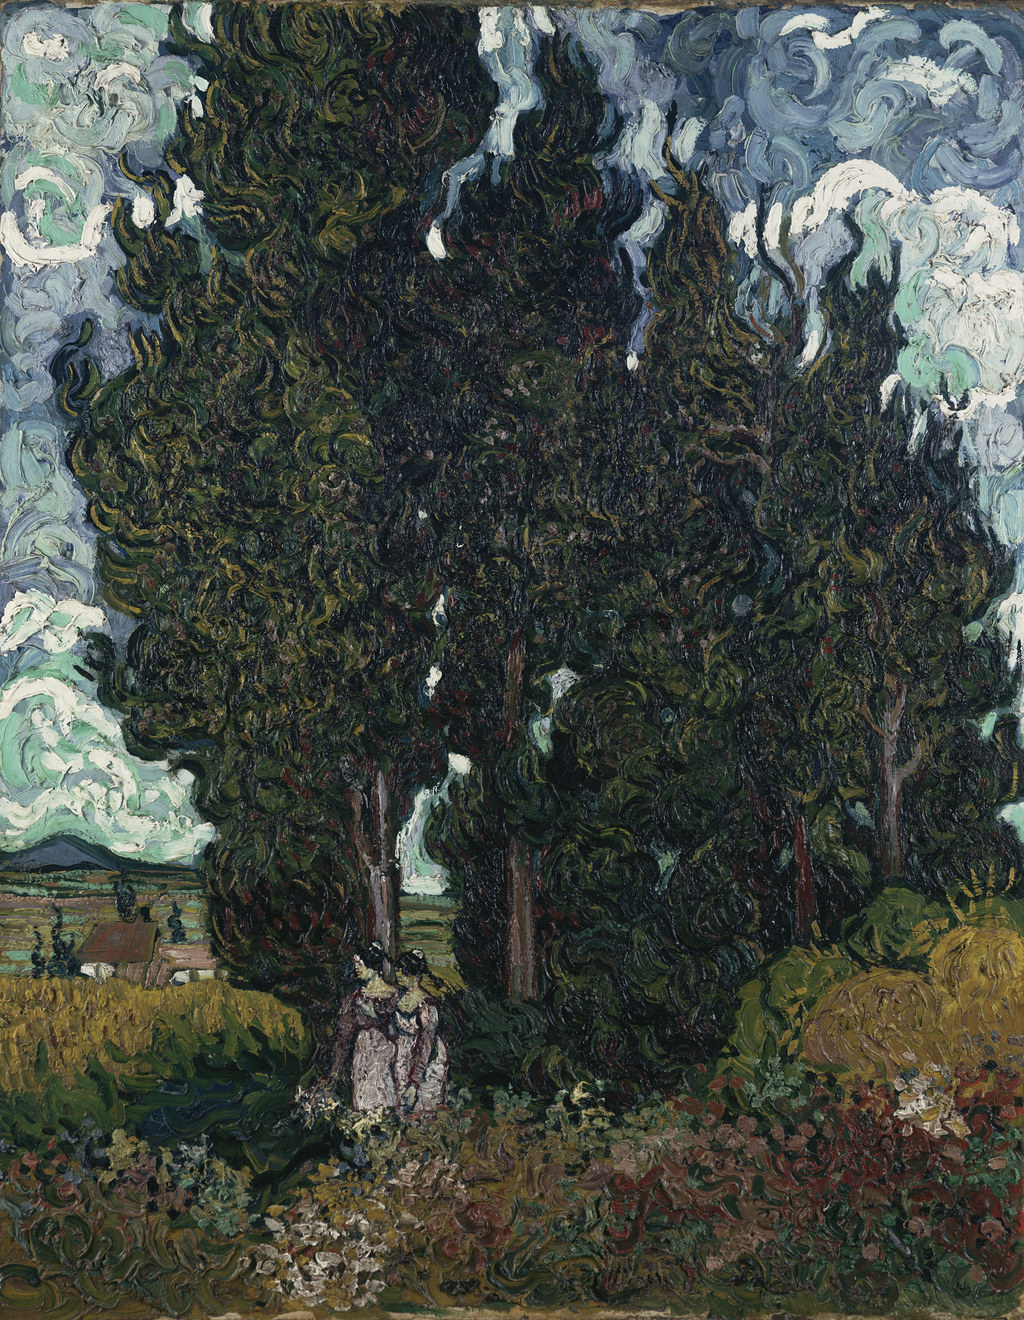 The Cypresses, a work of Van Gogh. Part of the collection of the Kröller-Müller Museum.